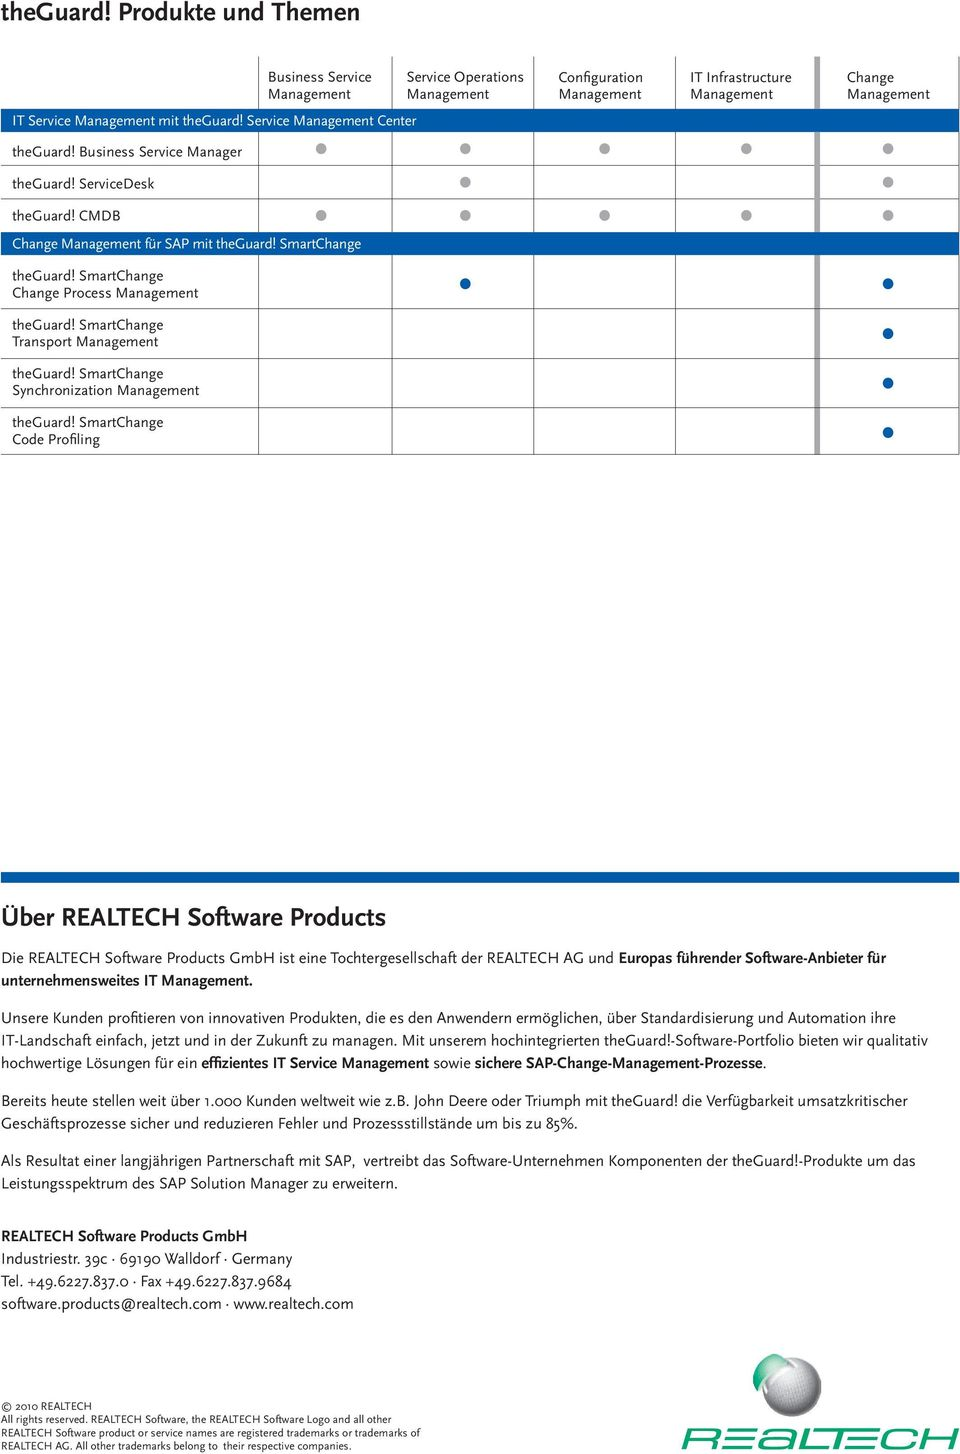 for SAP SmartChange Change Process Transport Synchronization Code Profiling Über REALTECH Software Products Die REALTECH Software Products GmbH ist eine Tochtergesellschaft der REALTECH AG und